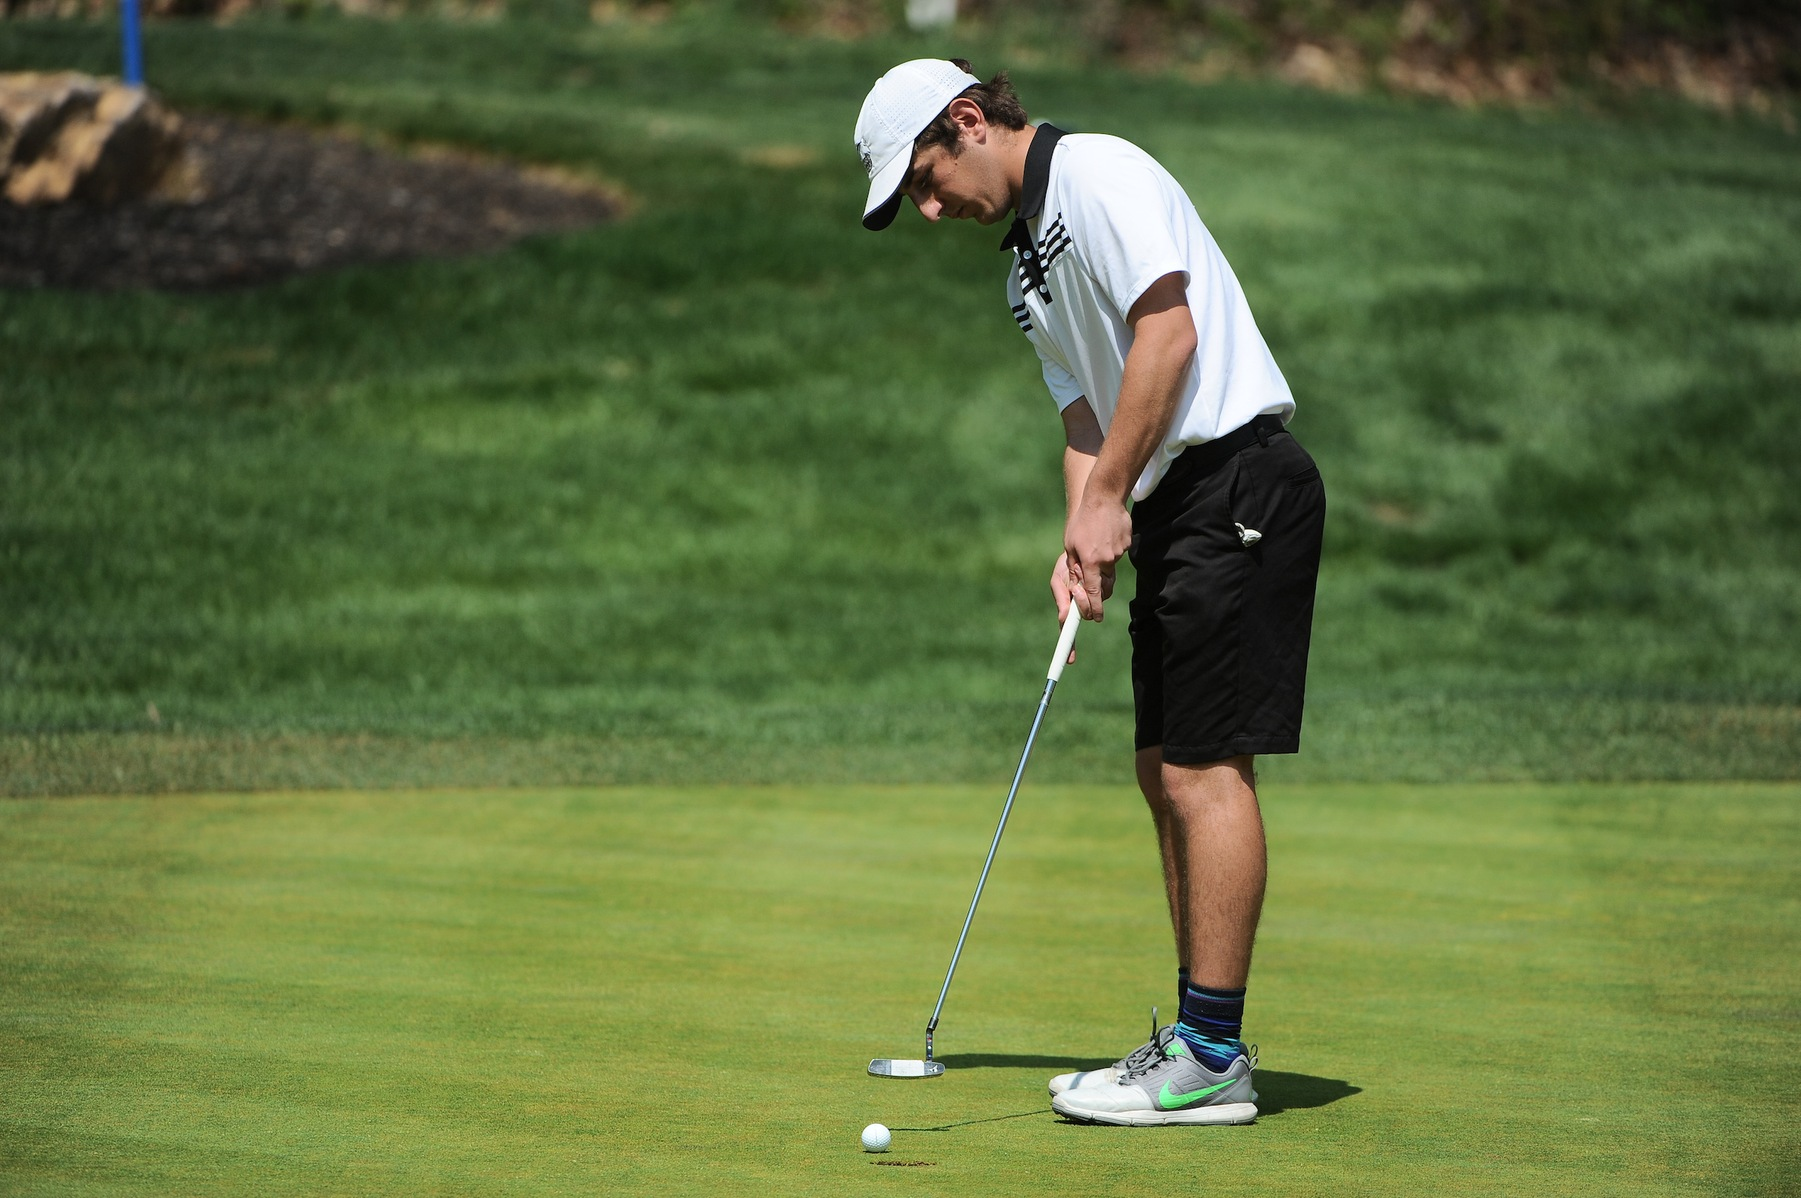 Shur Shoots 78 in Second Round of NCAA Championships